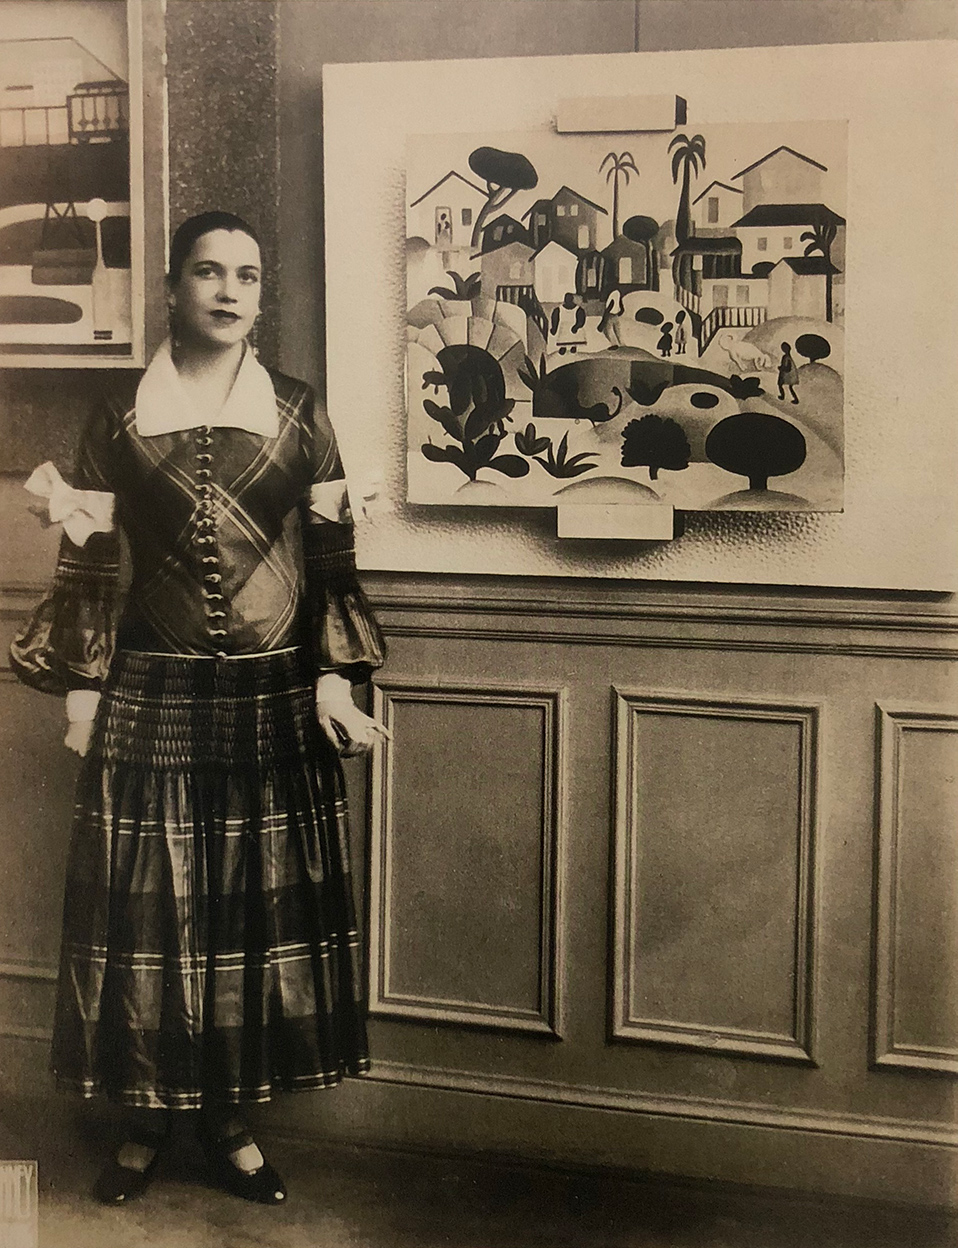 9. Artist Tarsila do Amaral at Galerie Percier, Paris July 1926, Arquivo do Instituto de Estudos Brasileiros da Universidade de São Paulo.  Tarsila do Amaral: Inventing Modern Art in Brazil , 2018, MoMA, New York